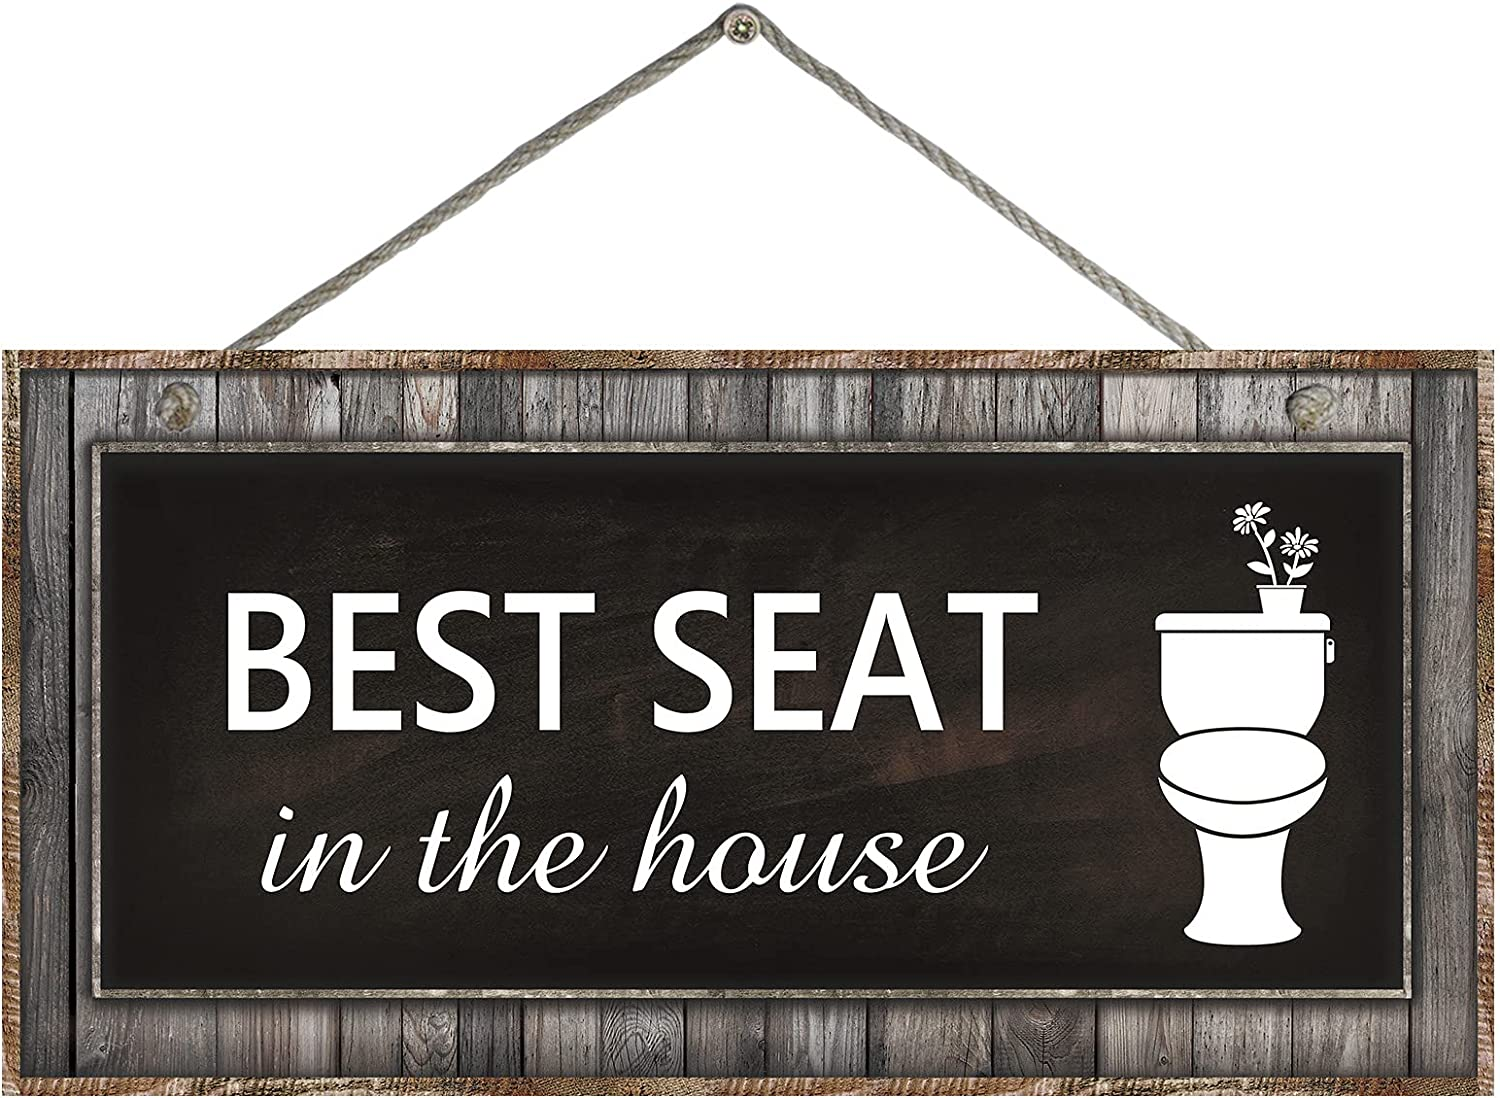 Best Seat in The House Bathroom Sign Decor - Modern Farmhouse Wall Decor Bathroom Sign, Funny Rustic Bathroom Wall Sign Wall Art for Guest Bathroom Decor Sign, 12